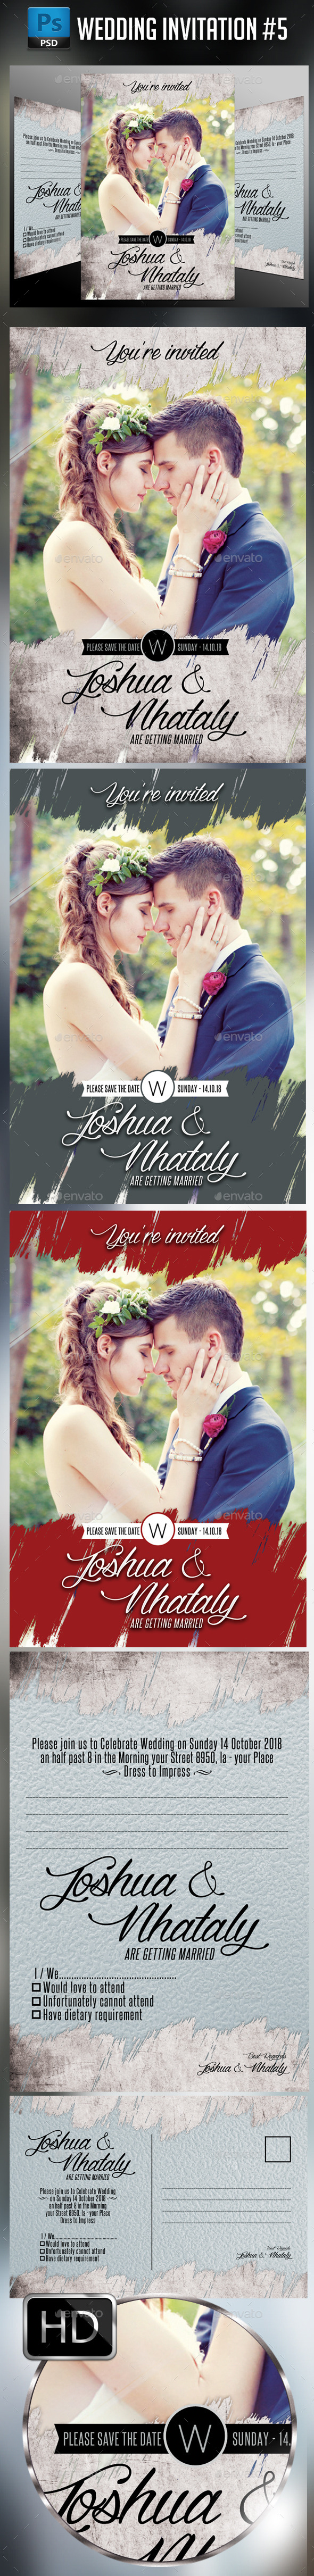 Wedding Invitation #5